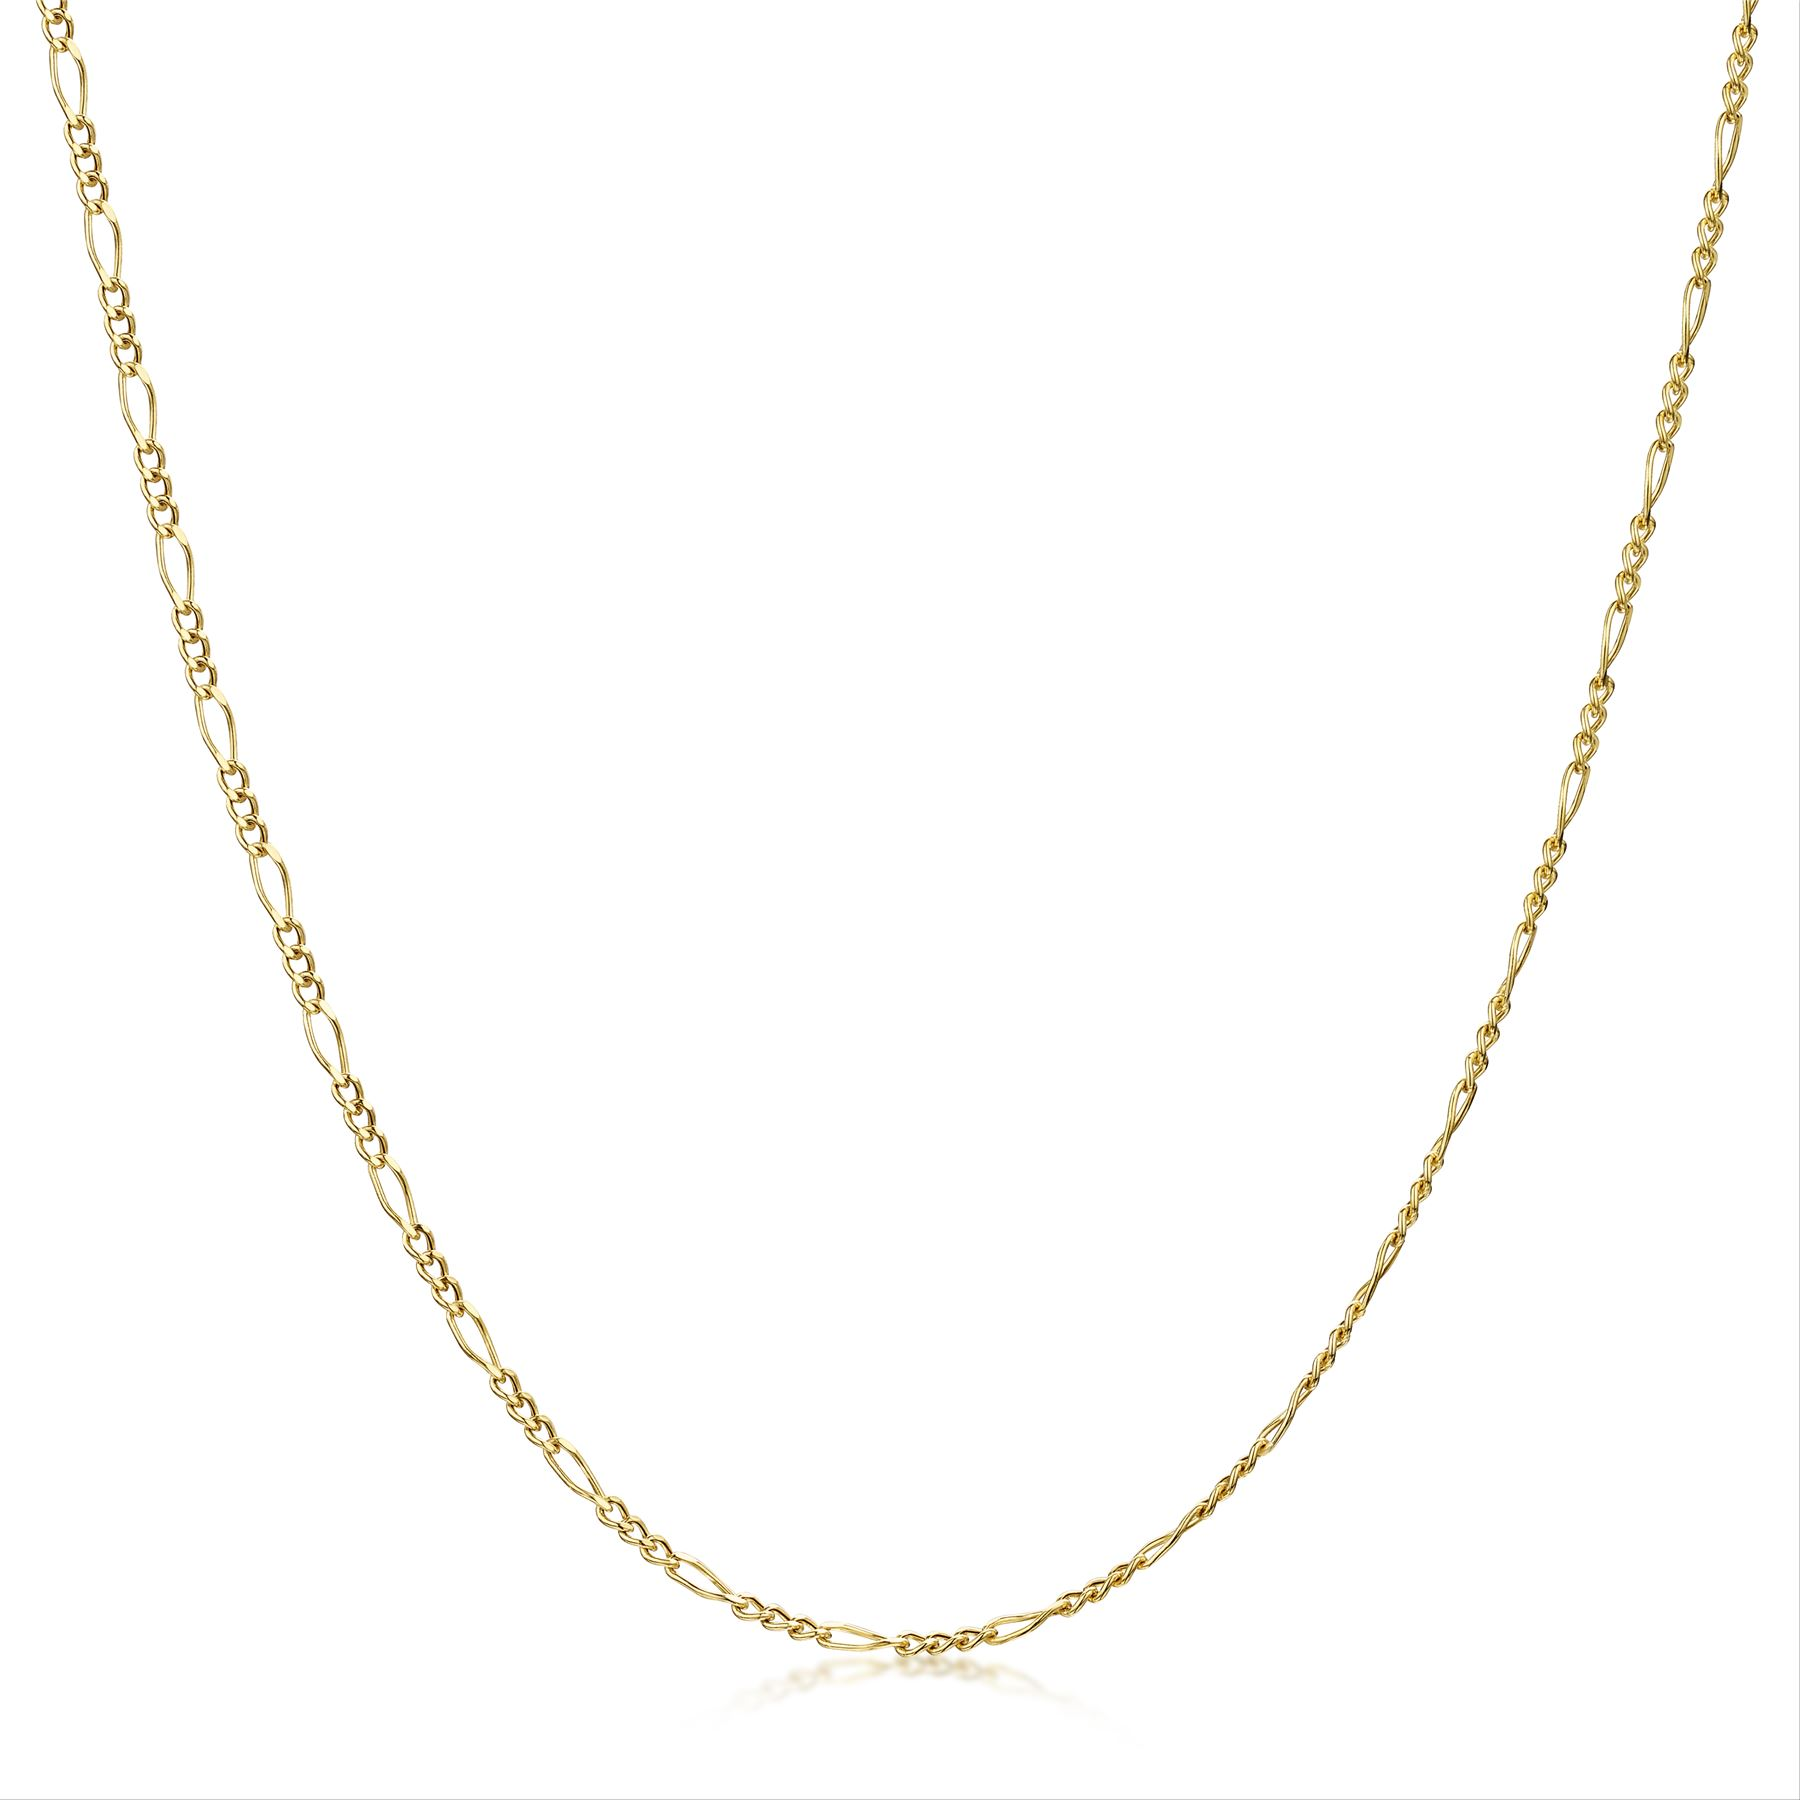 Amberta-Genuine-Real-Yellow-Gold-9K-Solid-Strong-Adjustable-Necklace-Chain-Italy thumbnail 11